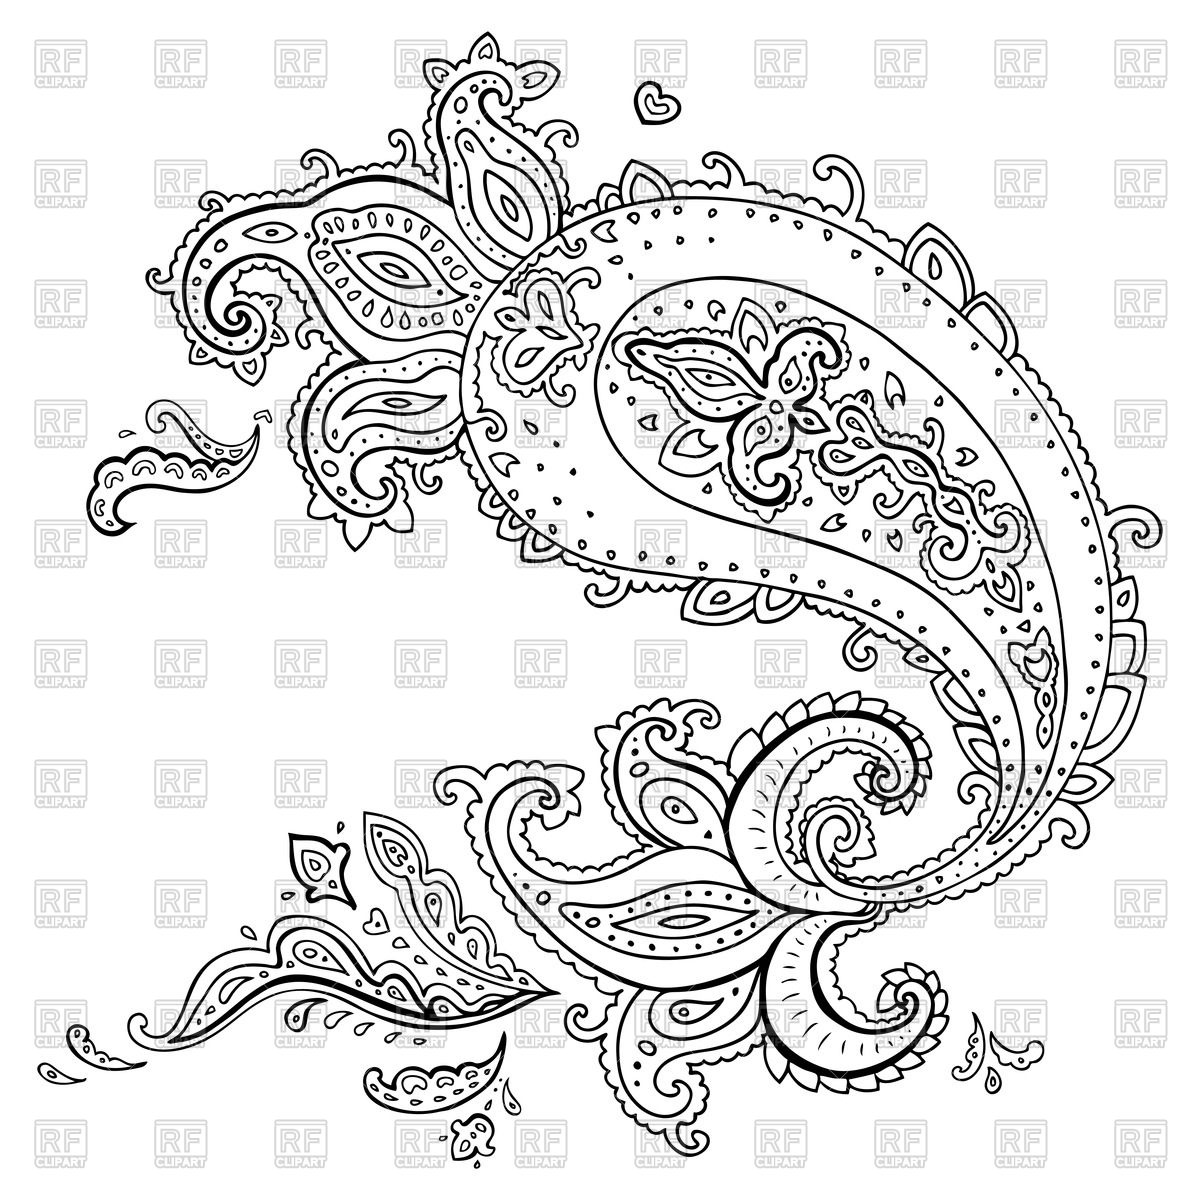 18 paisley designs free download images free paisley vector patterns vector paisley designs. Black Bedroom Furniture Sets. Home Design Ideas